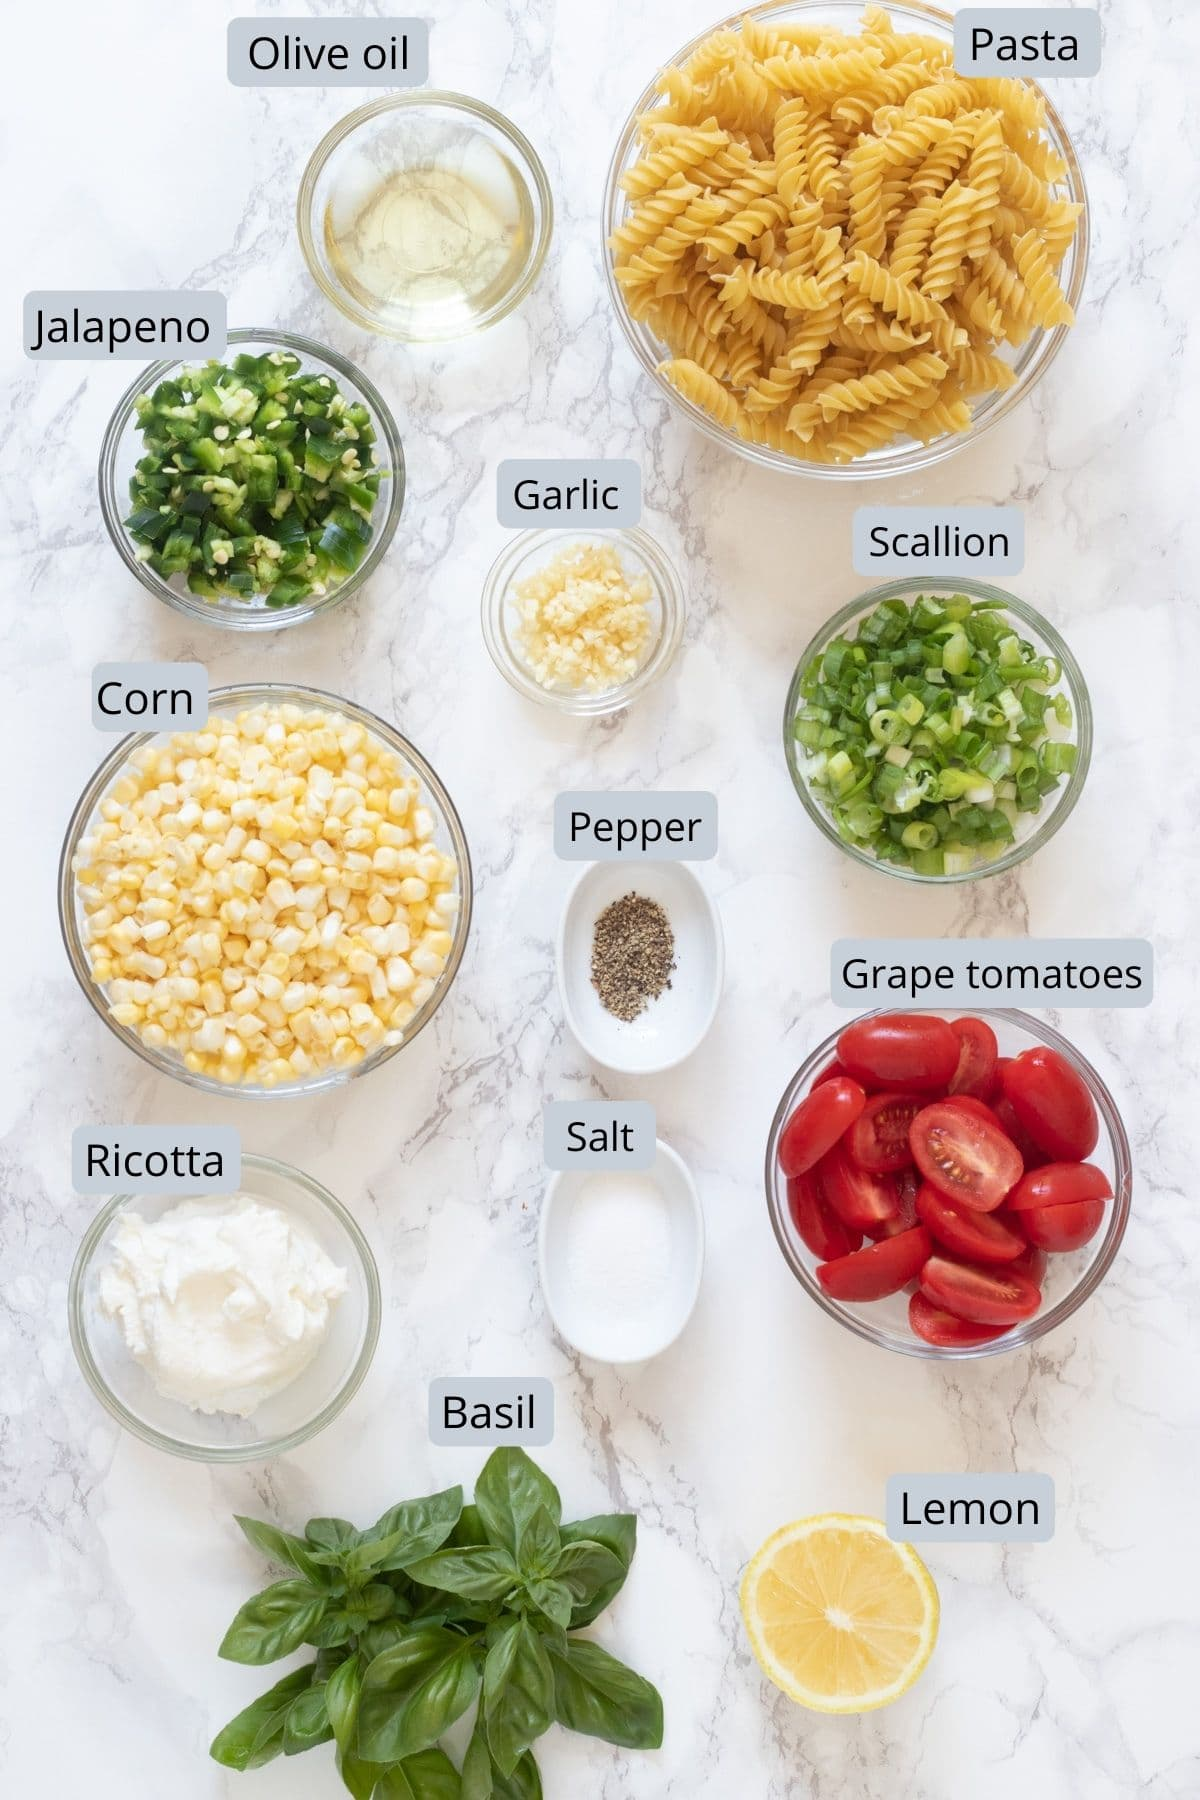 image of ingredients used in corn pasta includes pasta, corn, jalapeno, garlic, scallions, basil, lemon, ricotta, tomatoes, salt, pepper, oil